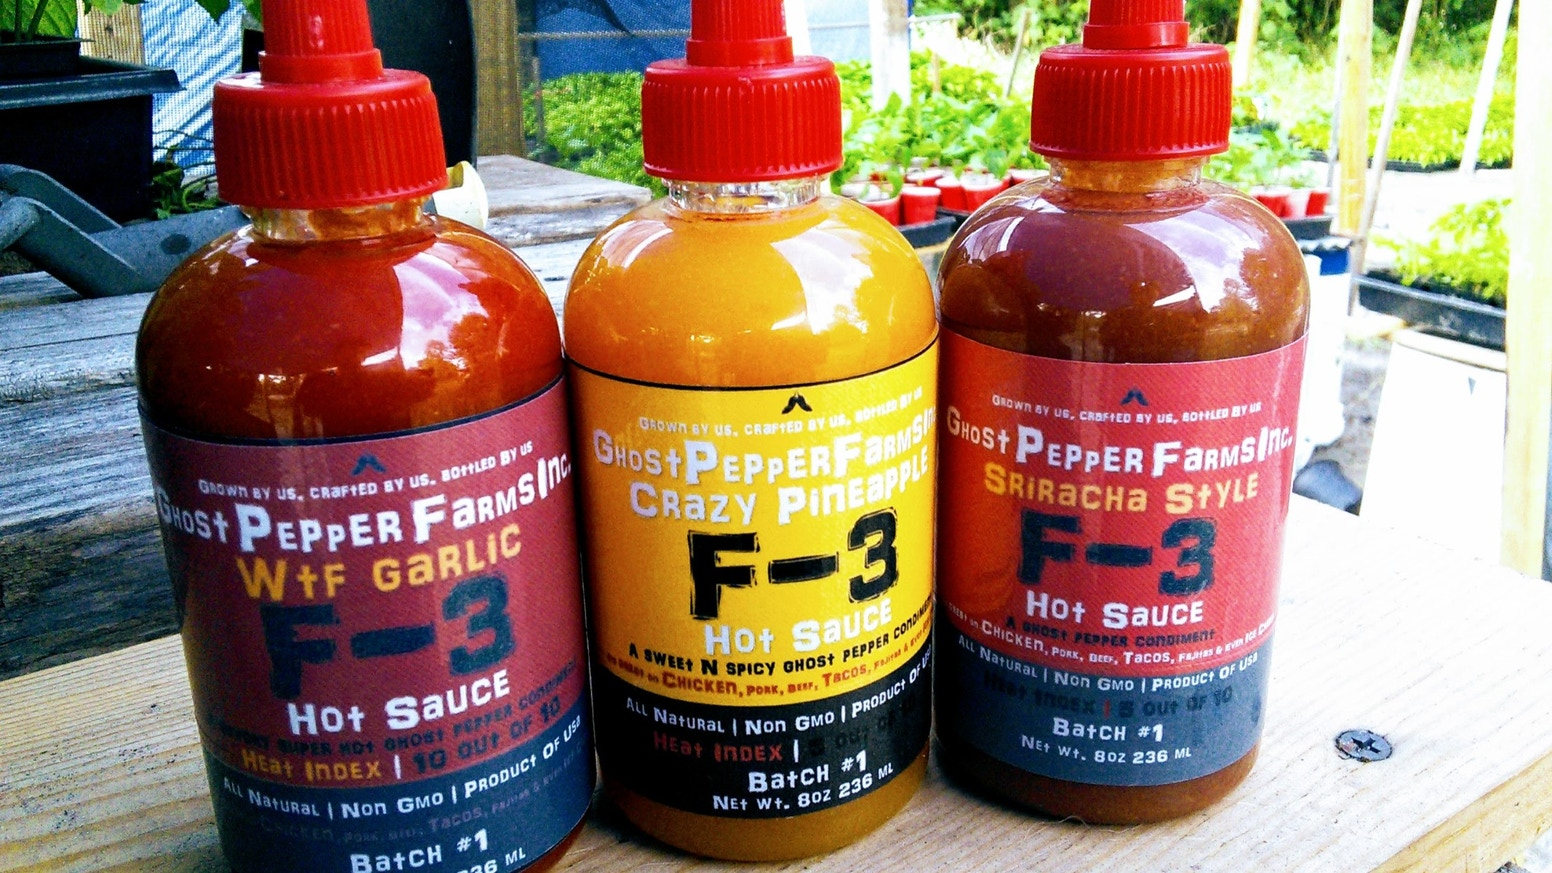 Try Our New Hot Sauce Crazy Pineapple + Sriracha Style + Wtf Garlic It's All Natural & Vegan Friendly With A Fresh Pepper CSA.